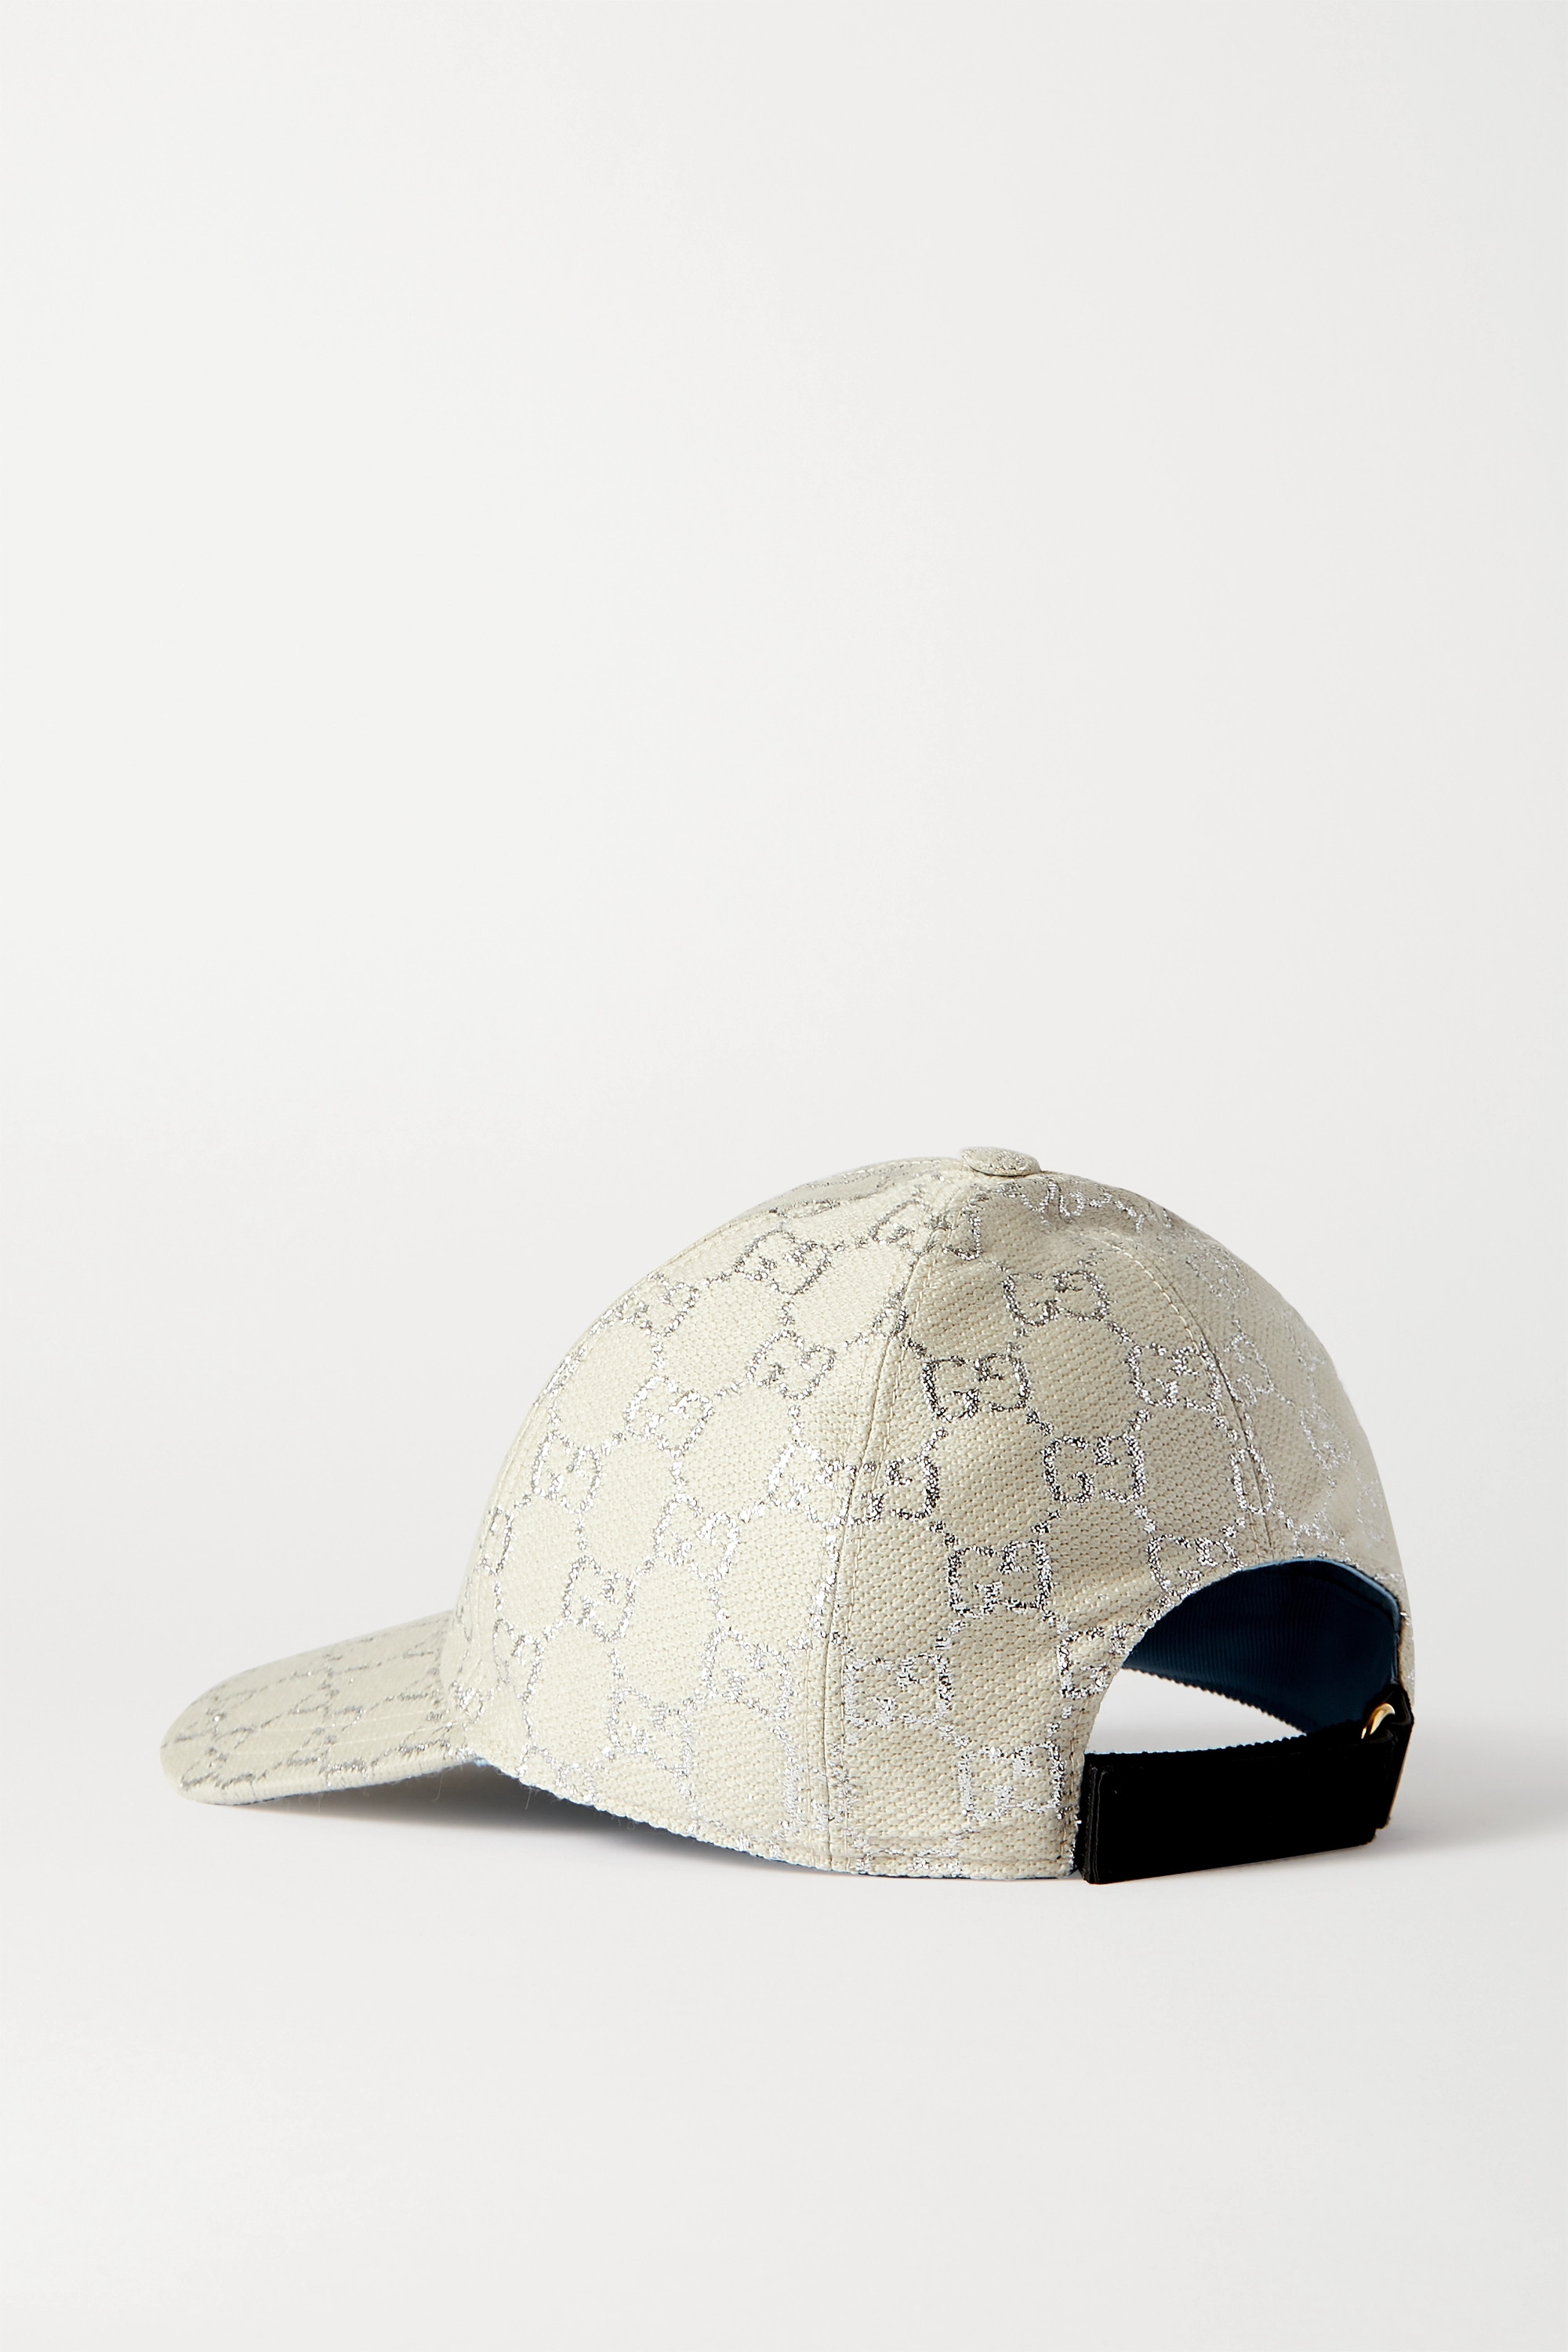 Gucci Metallic wool-blend jacquard baseball cap